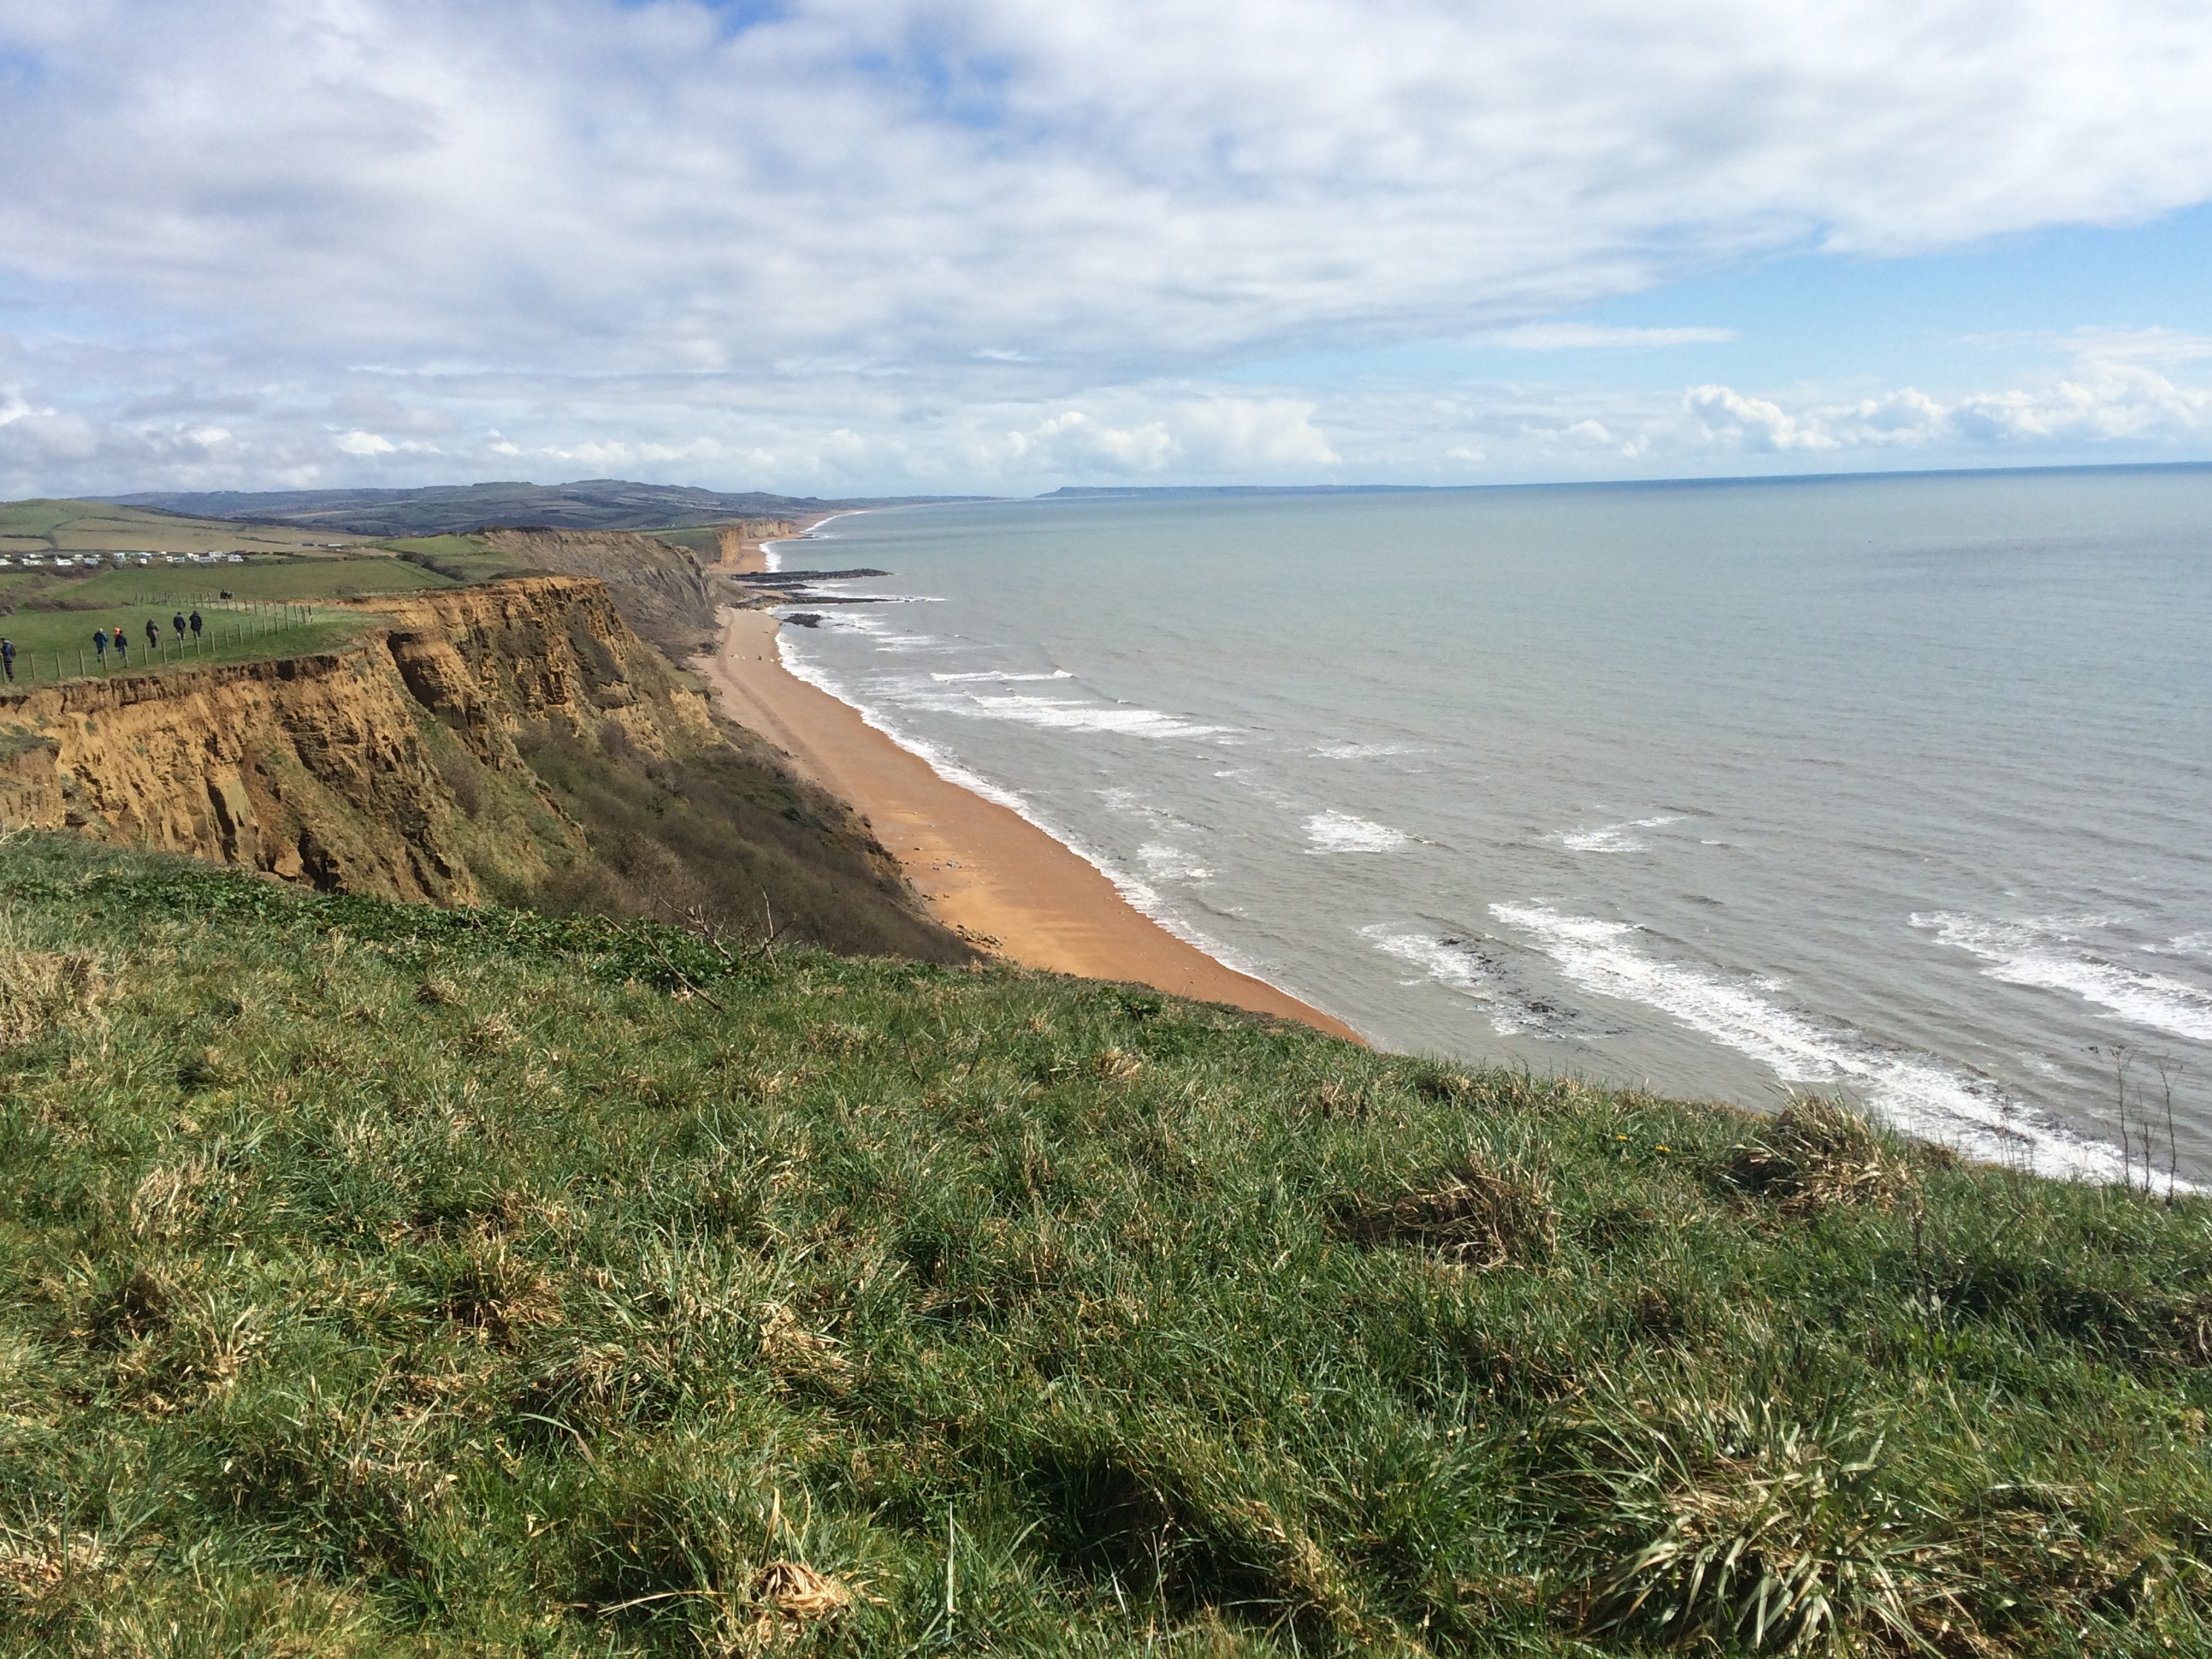 Looking east along the Jurassic Coast towards West Bay